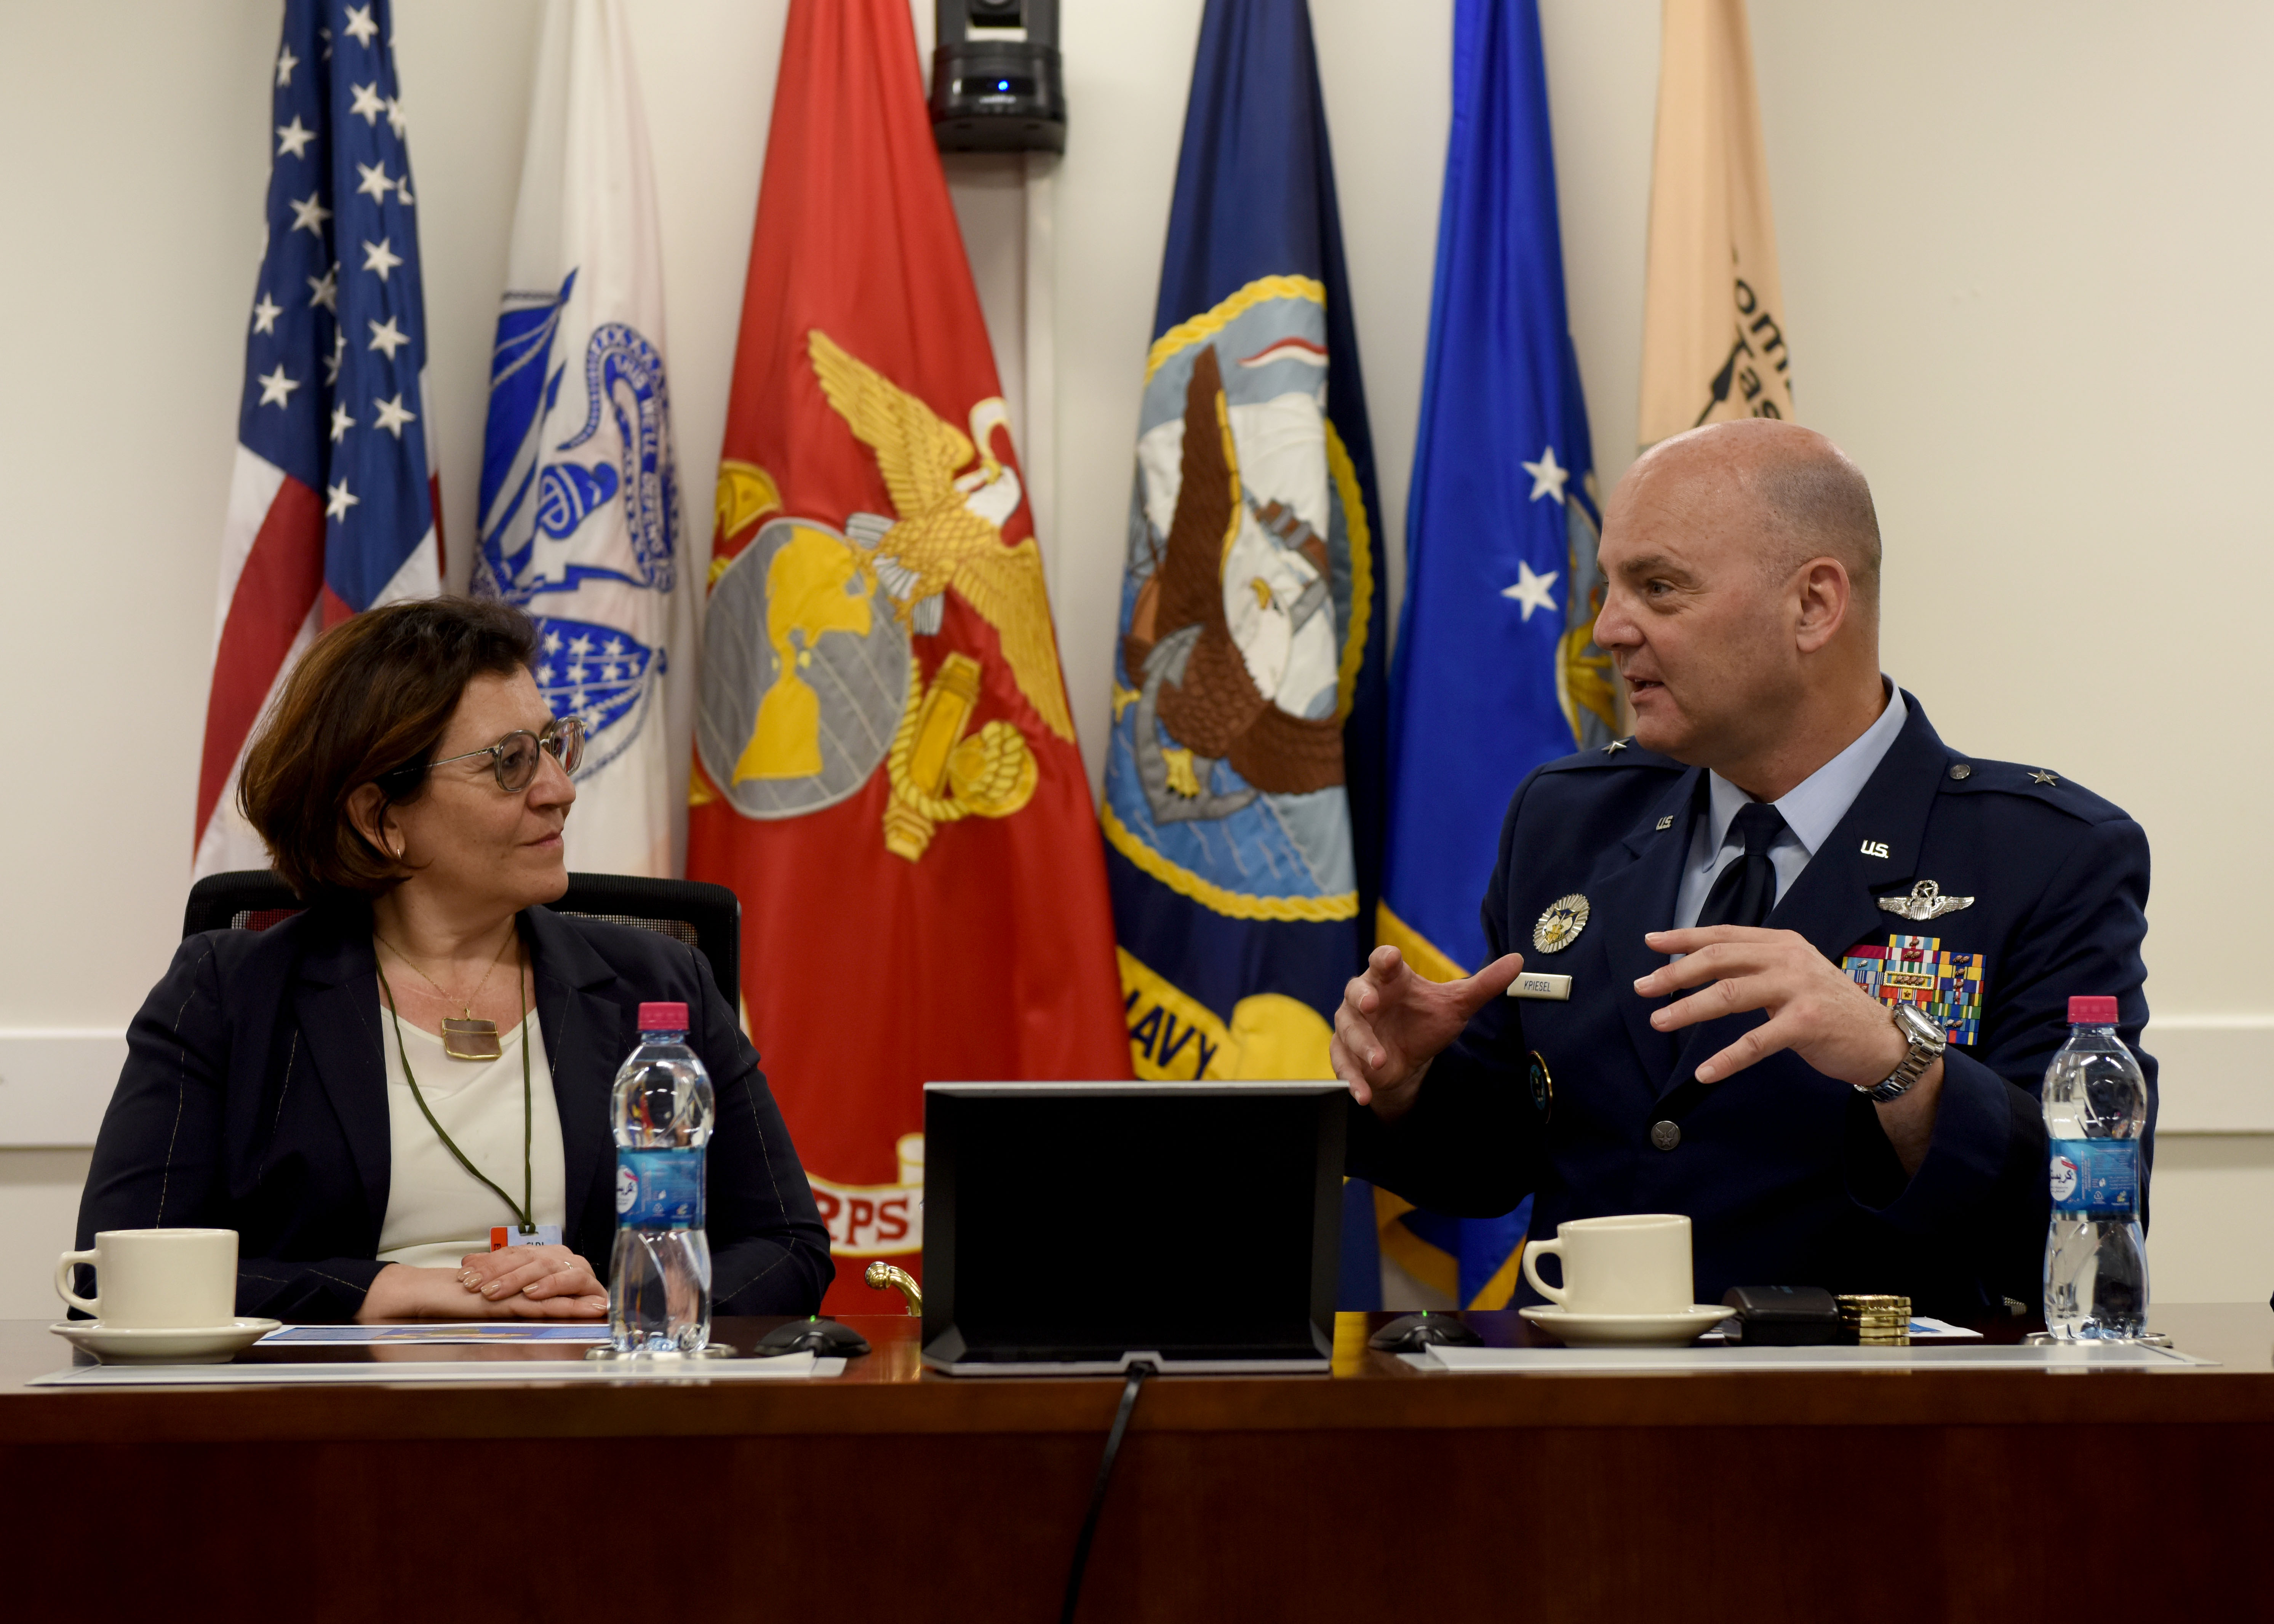 Elisabetta Trenta, Italian Minister of Defense, left, listens to U.S. Air Force Brig. Gen. James R. Kriesel, deputy commanding general of Combined Joint Task Force-Horn of Africa (CJTF- HOA), to gain insight into the partnership between the two nations on the African continent during her visit to Camp Lemonnier, Djibouti, April 9, 2019. Trenta visited CJTF-HOA to gain insight on how U.S. forces operate in the combined joint operations area and to foster relations. (U.S. Air Force Photo by Staff Sgt. Franklin R. Ramos)